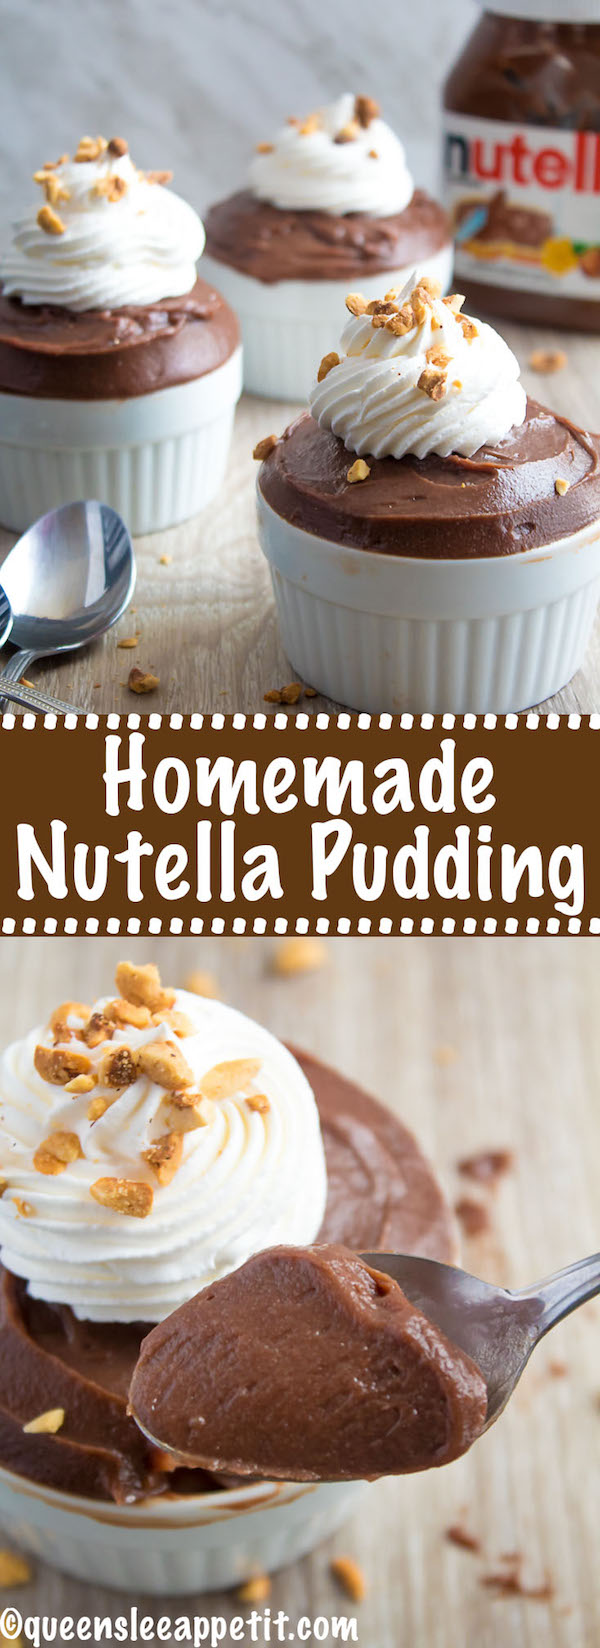 This Homemade Nutella Pudding is super velvety, thick and decadent. Packed with loads of Chocolate-hazelnut flavour, it's a tasty treat everyone will enjoy!